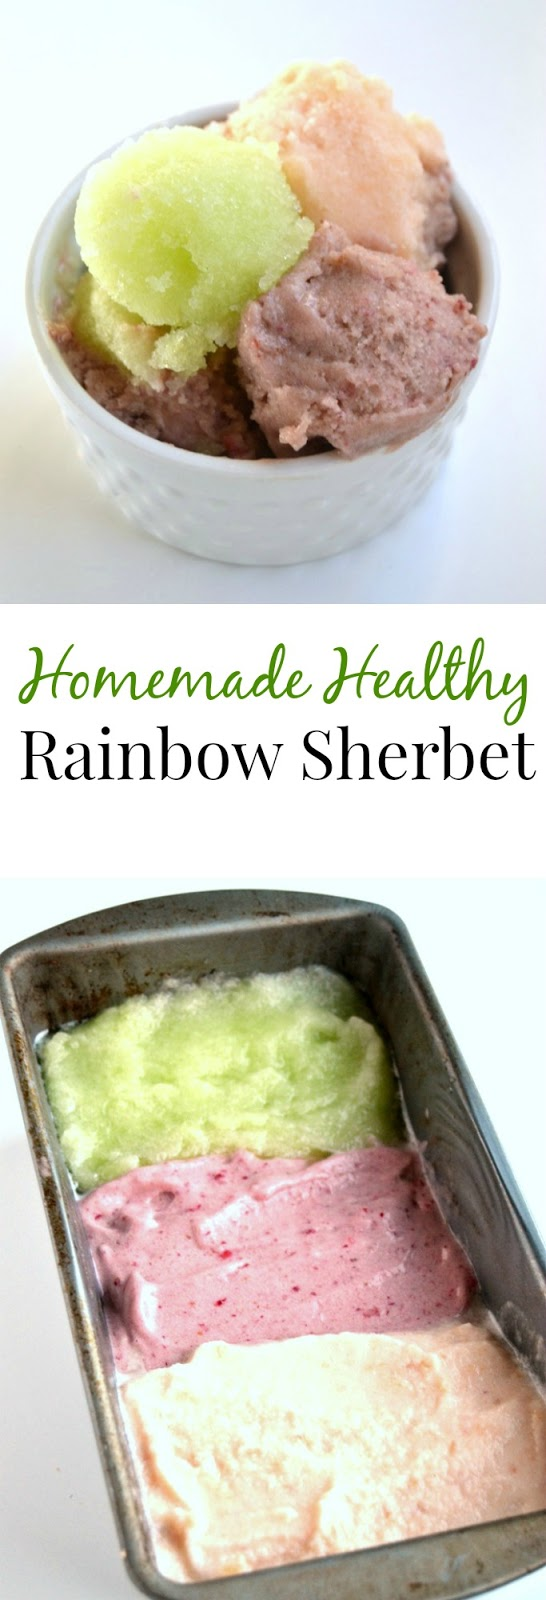 Homemade Healthy Rainbow Sherbet is made with fresh cantaloupe, honeydew melon and strawberries for a much healthier dessert that is simple to make and delicious! www.nutritionistreviews.com